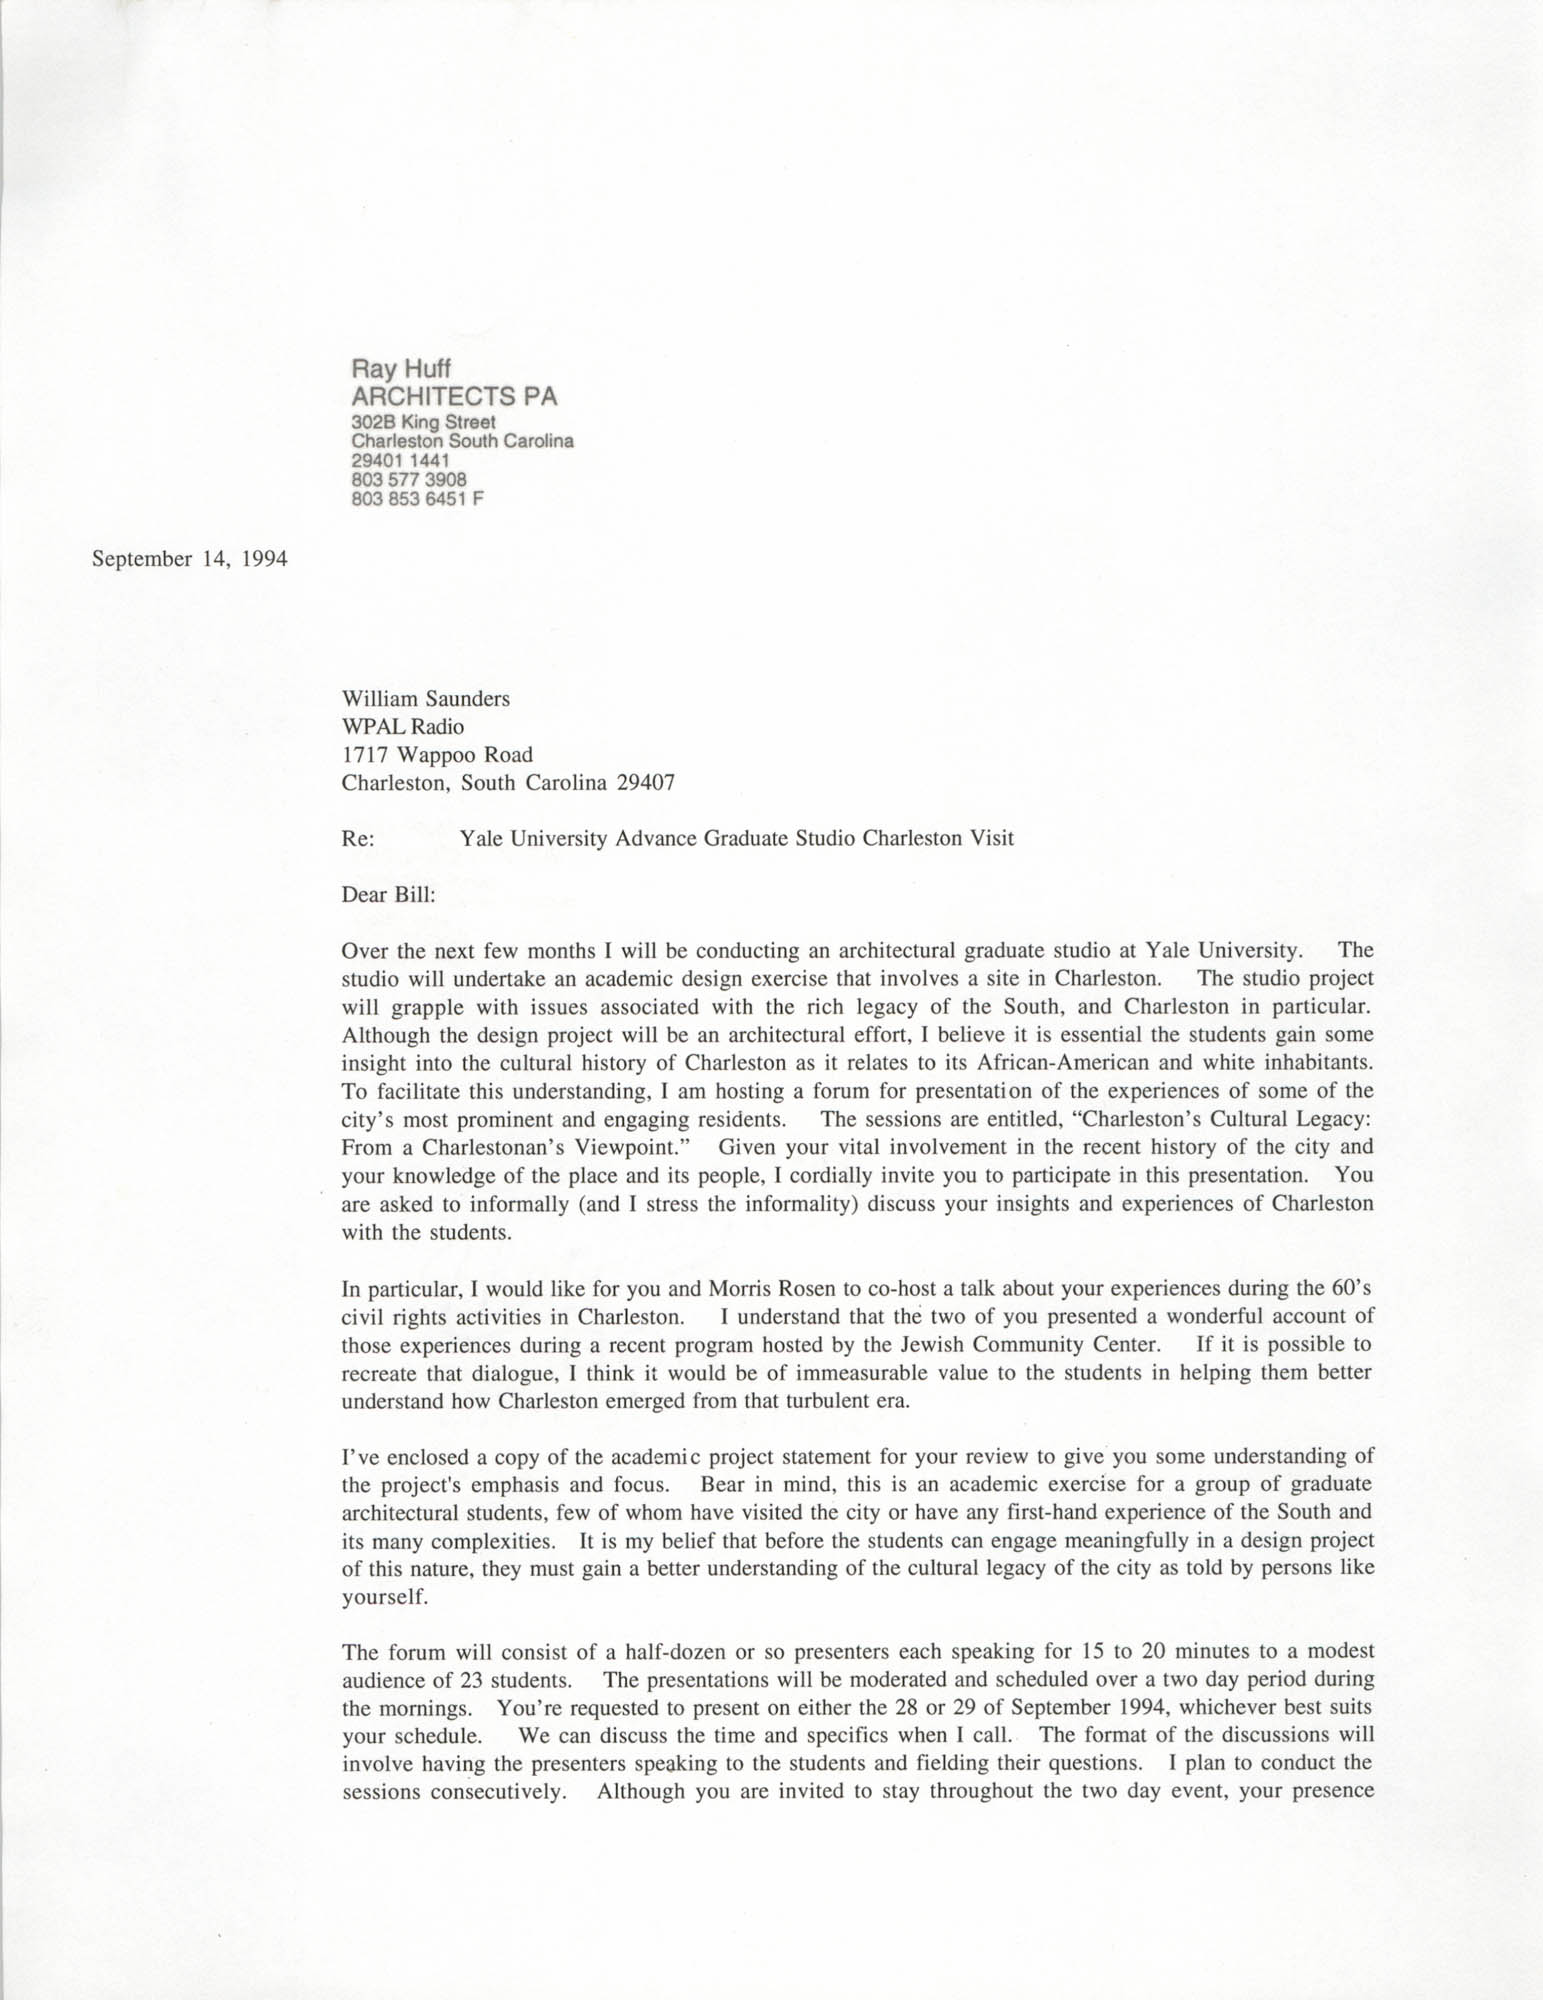 Letter from Ray Huff to William Saunders, September 14, 1994